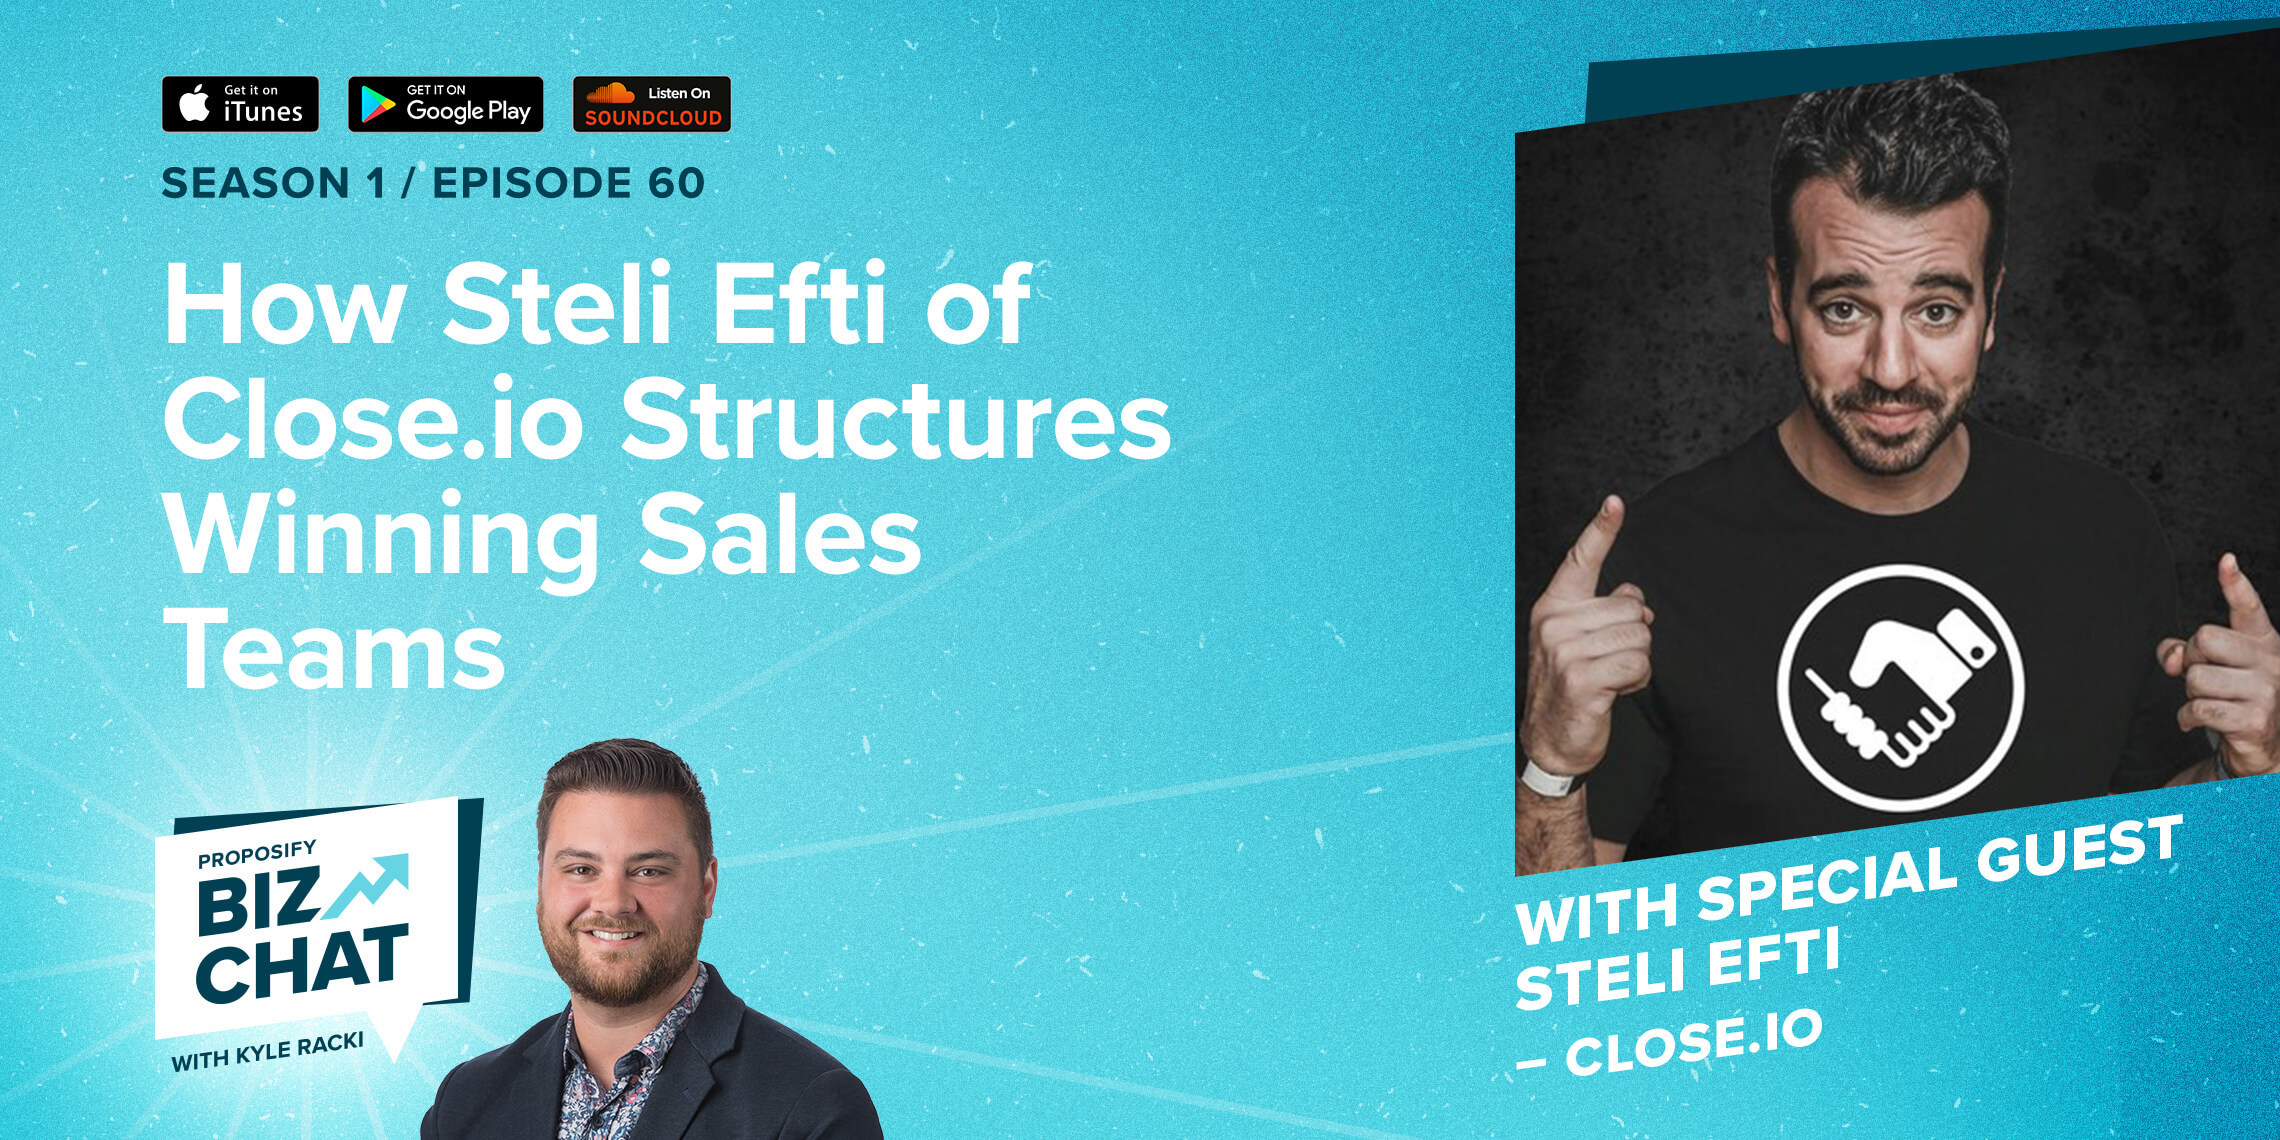 How Steli Efti of Close.io Structures Winning Sales Teams